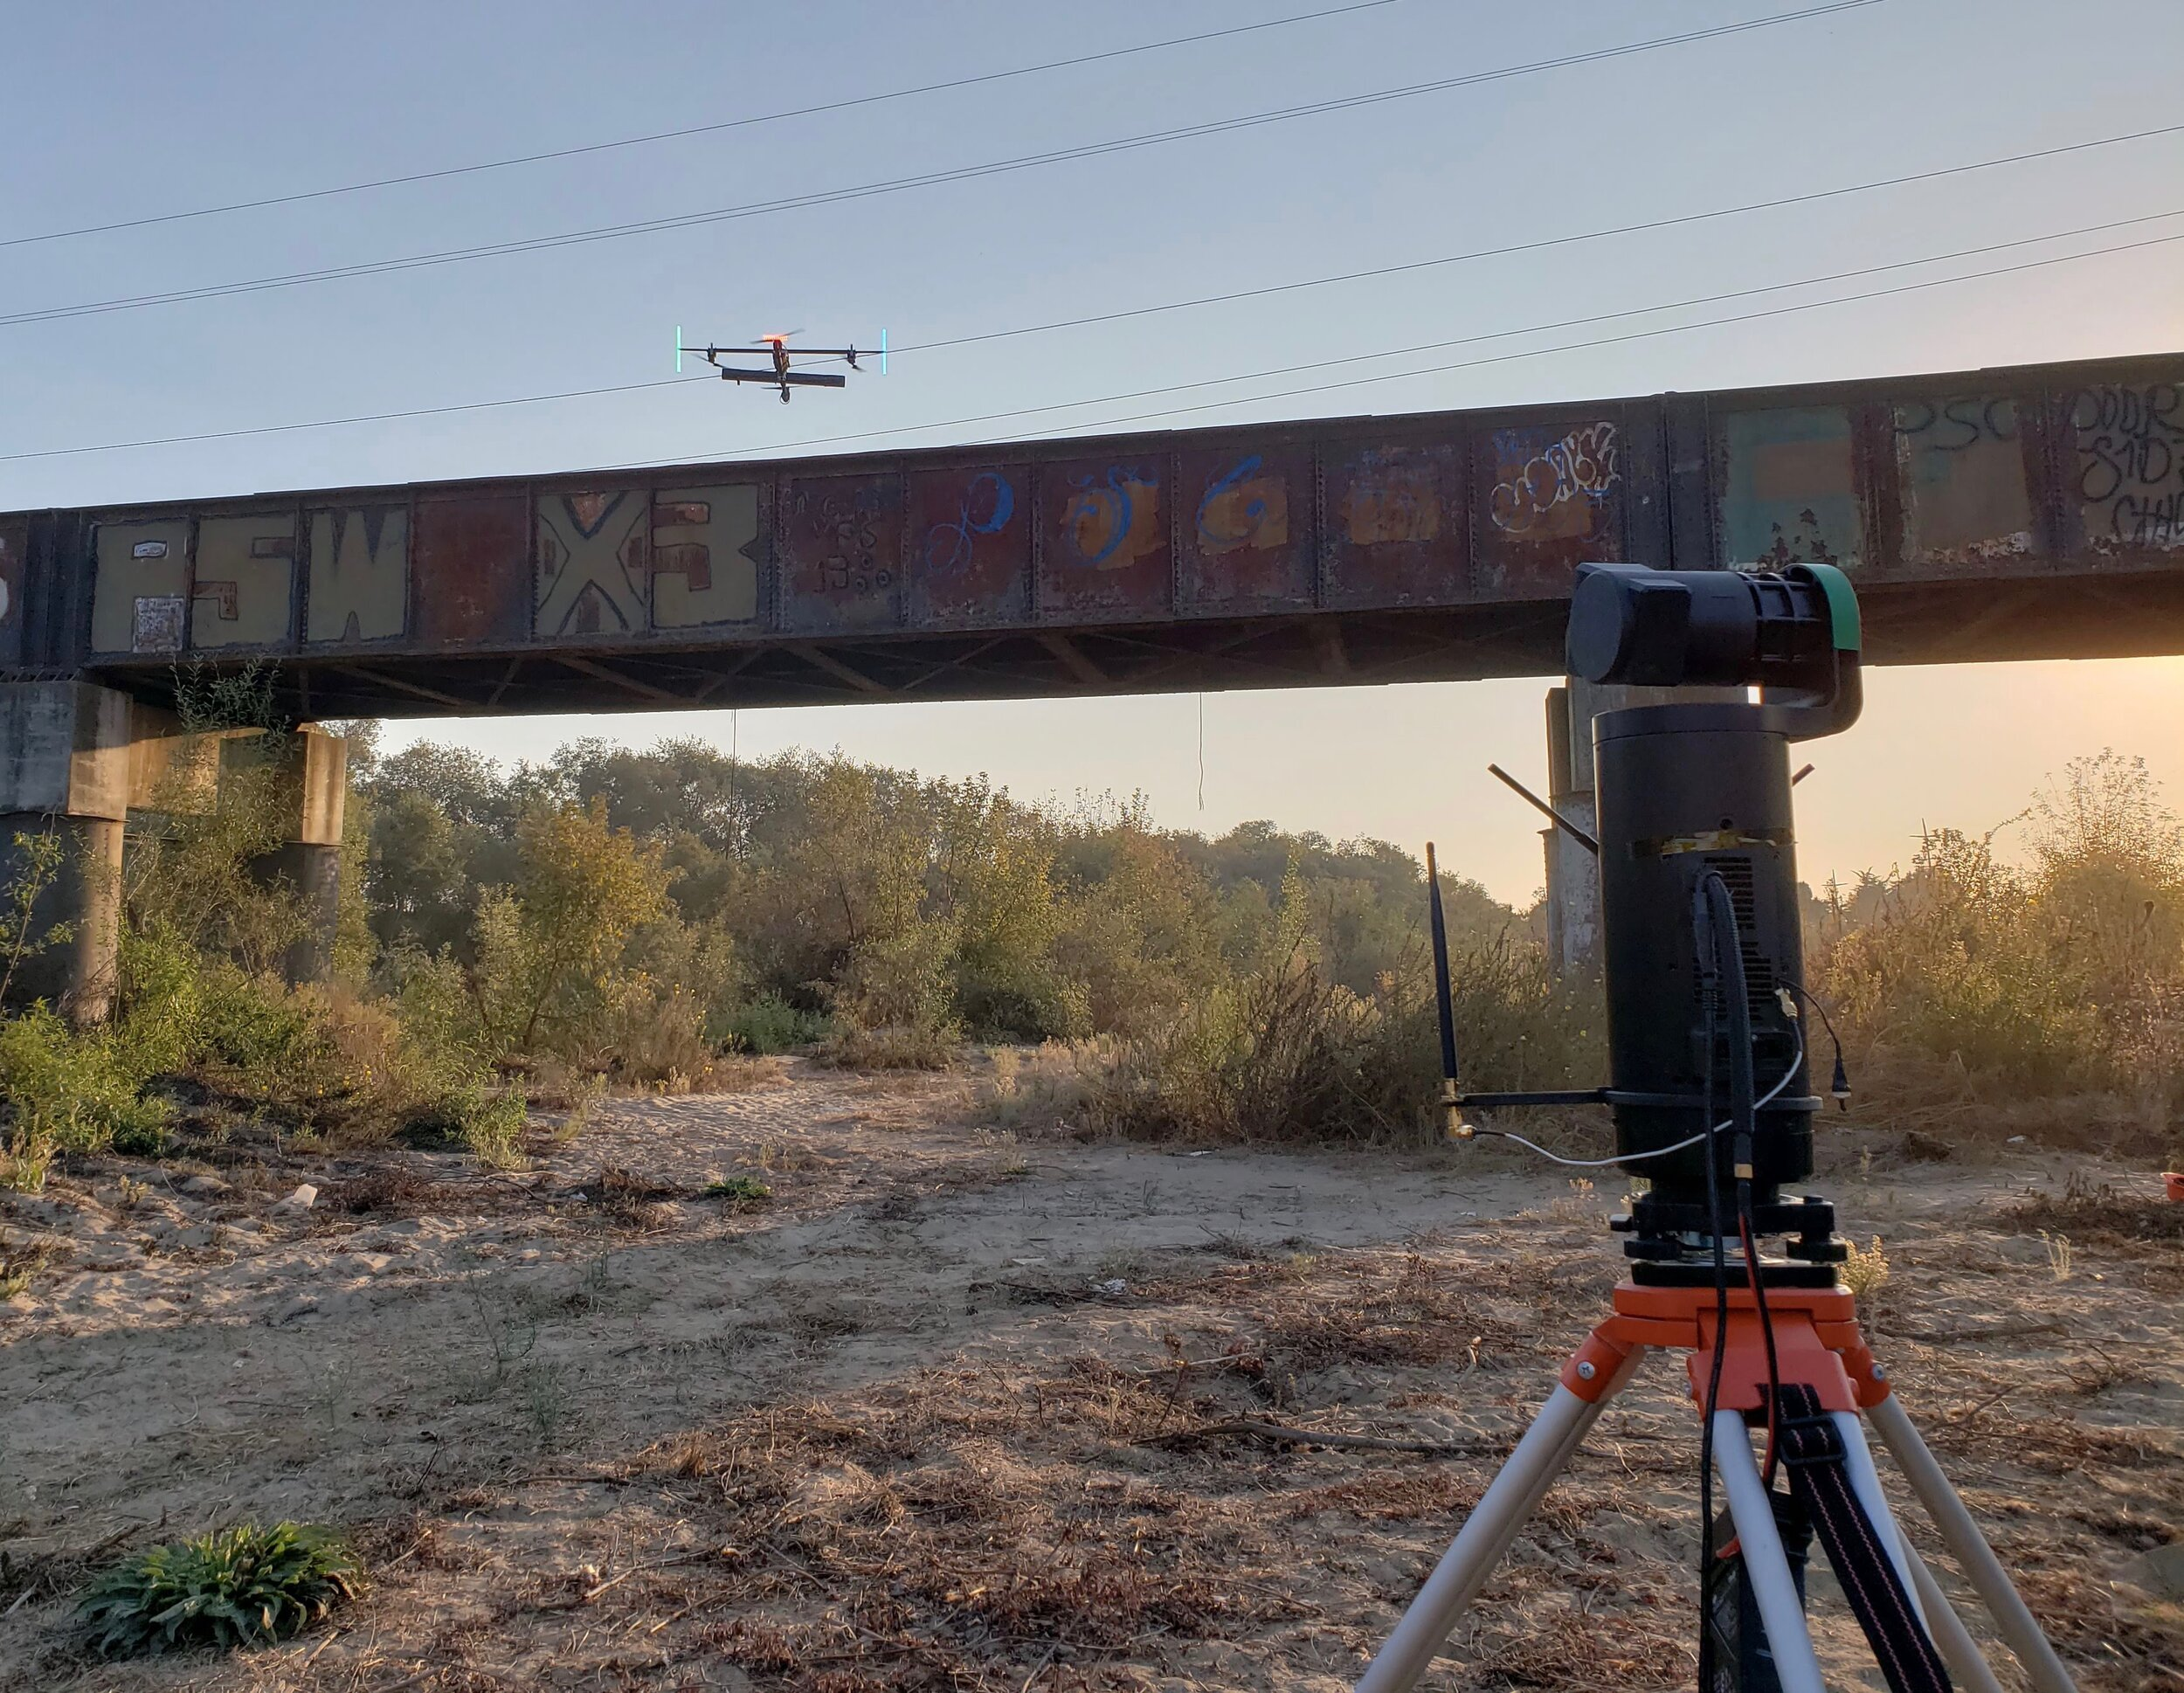 PRENAV_RailroadBridge_UAV.jpg